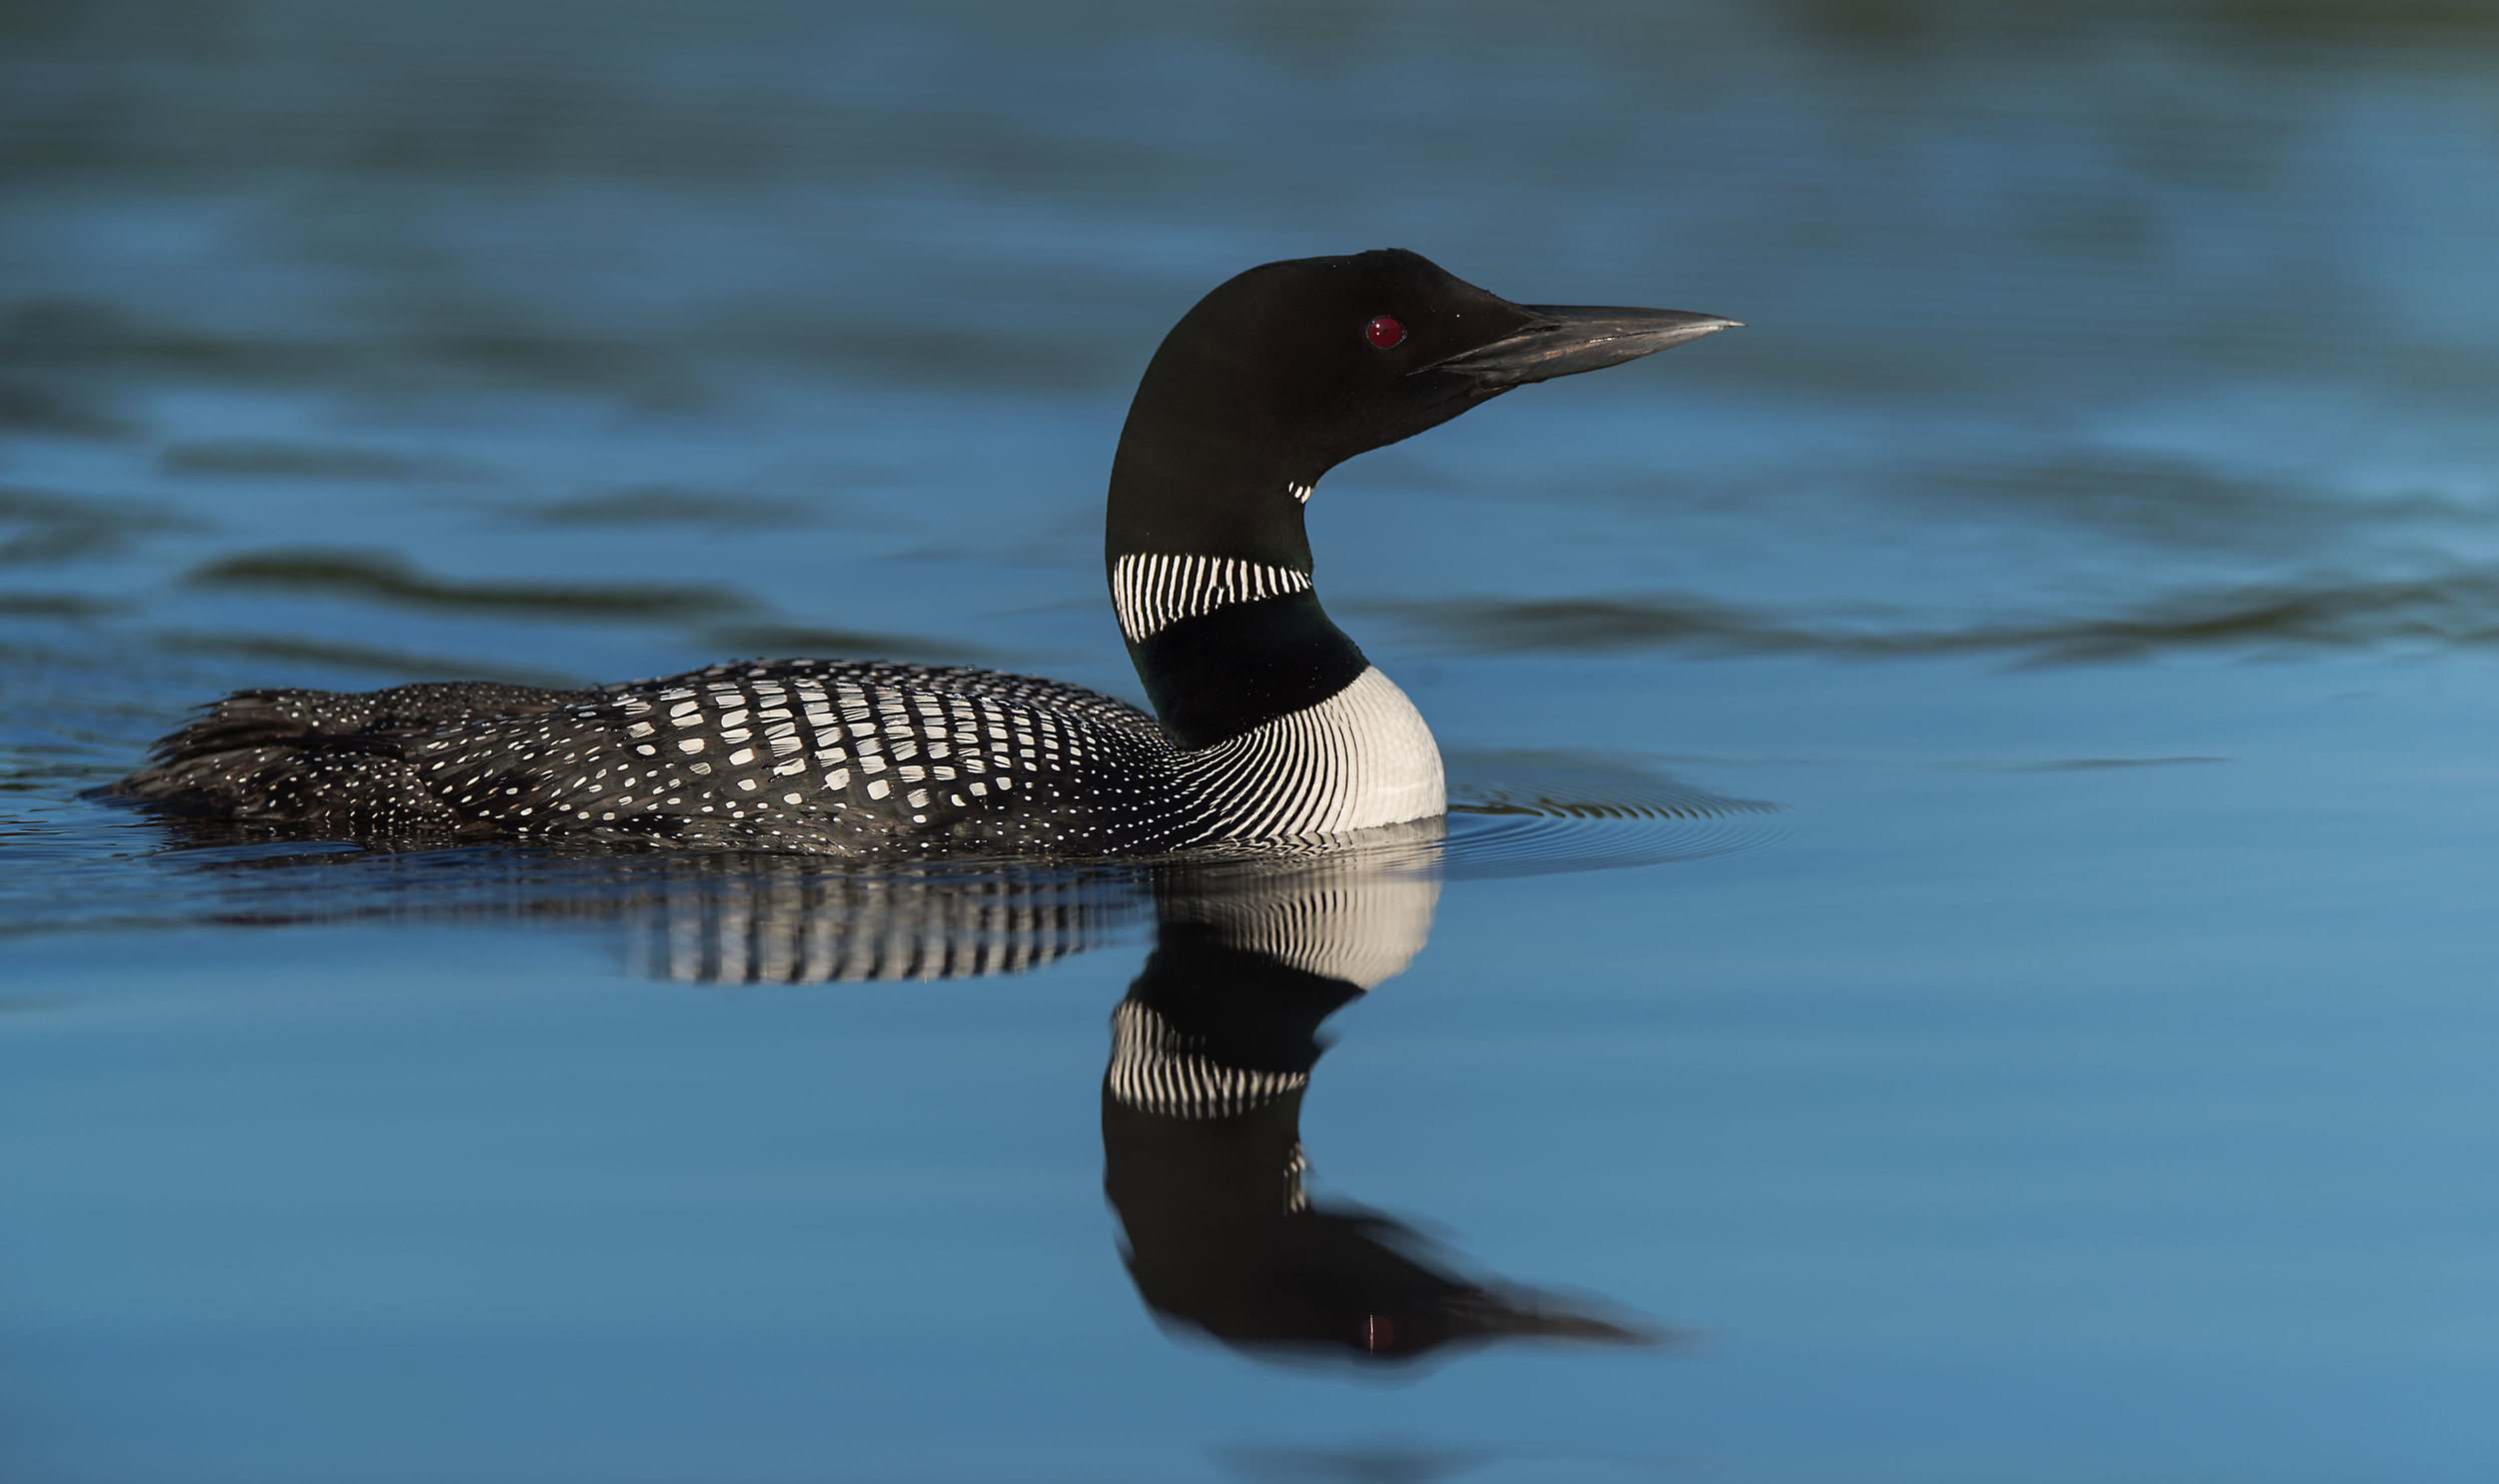 Common Loon photo reflections